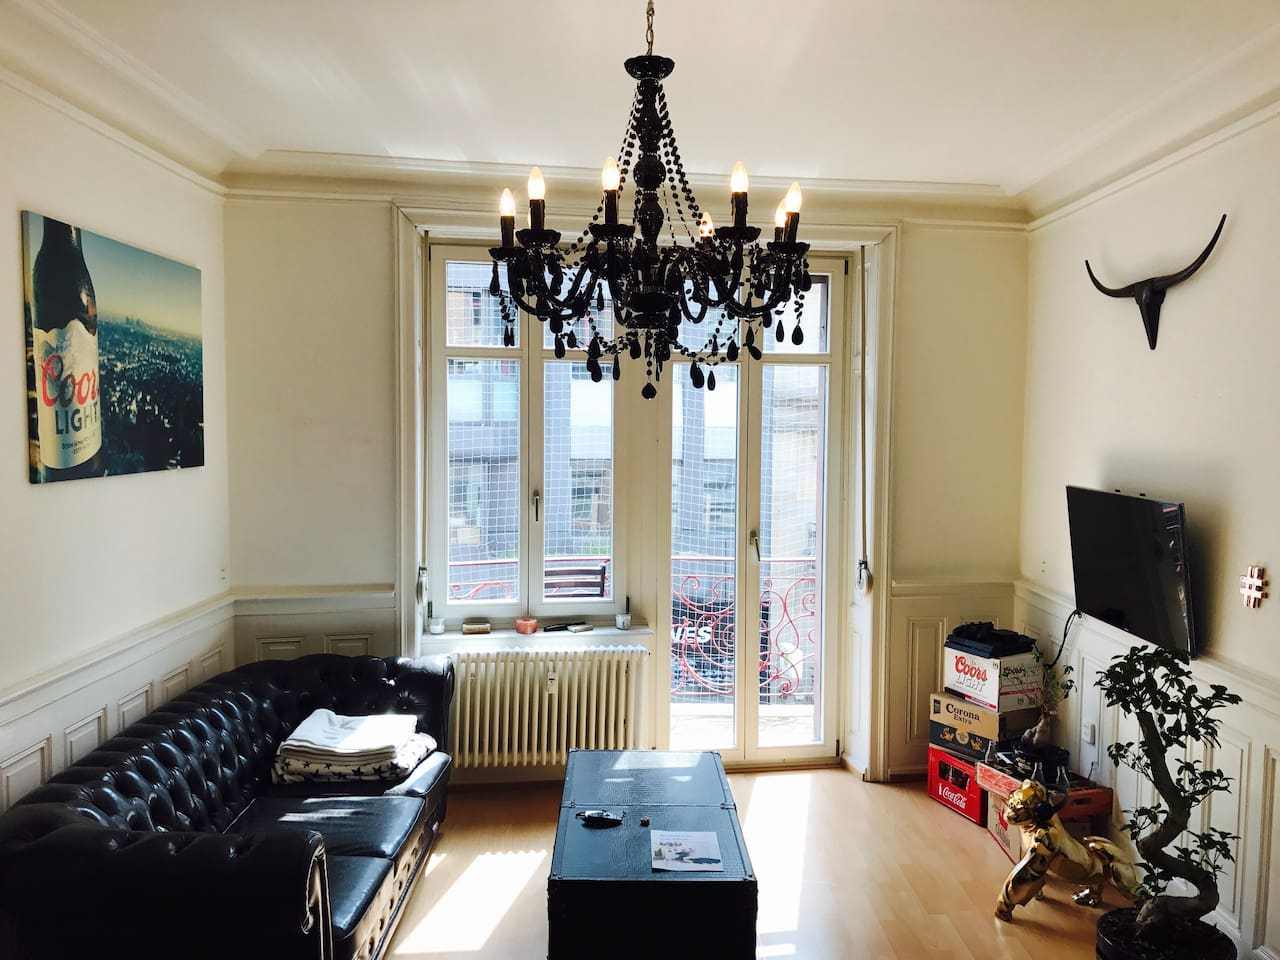 Apartment in the heart of Basel - chillin' livingroom to talk, read, watch TV or playing the Playstation!